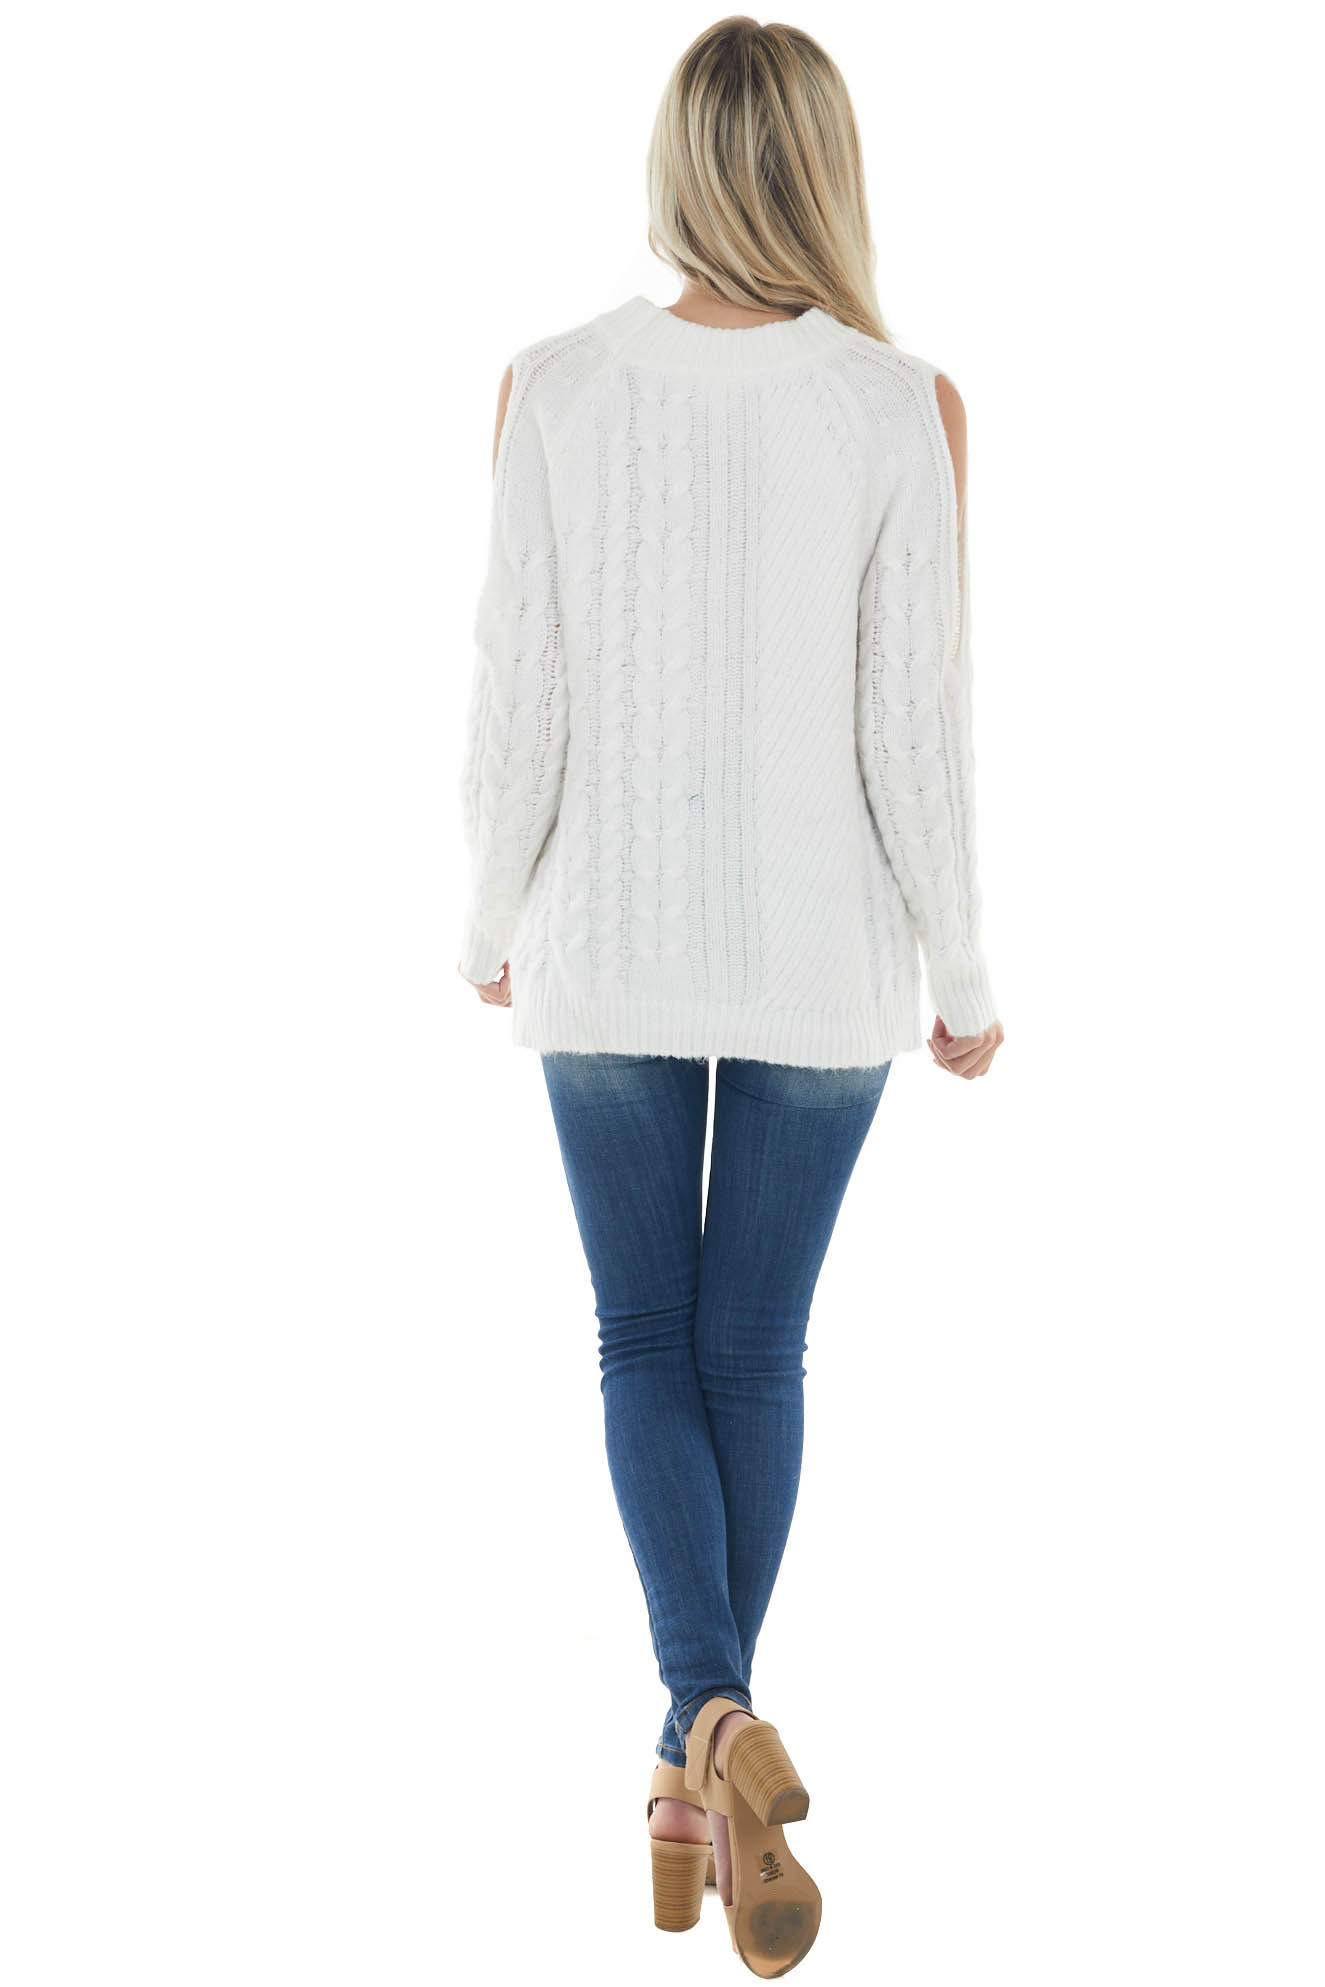 Ivory Twisted Knit Shoulder Cut Out Sweater